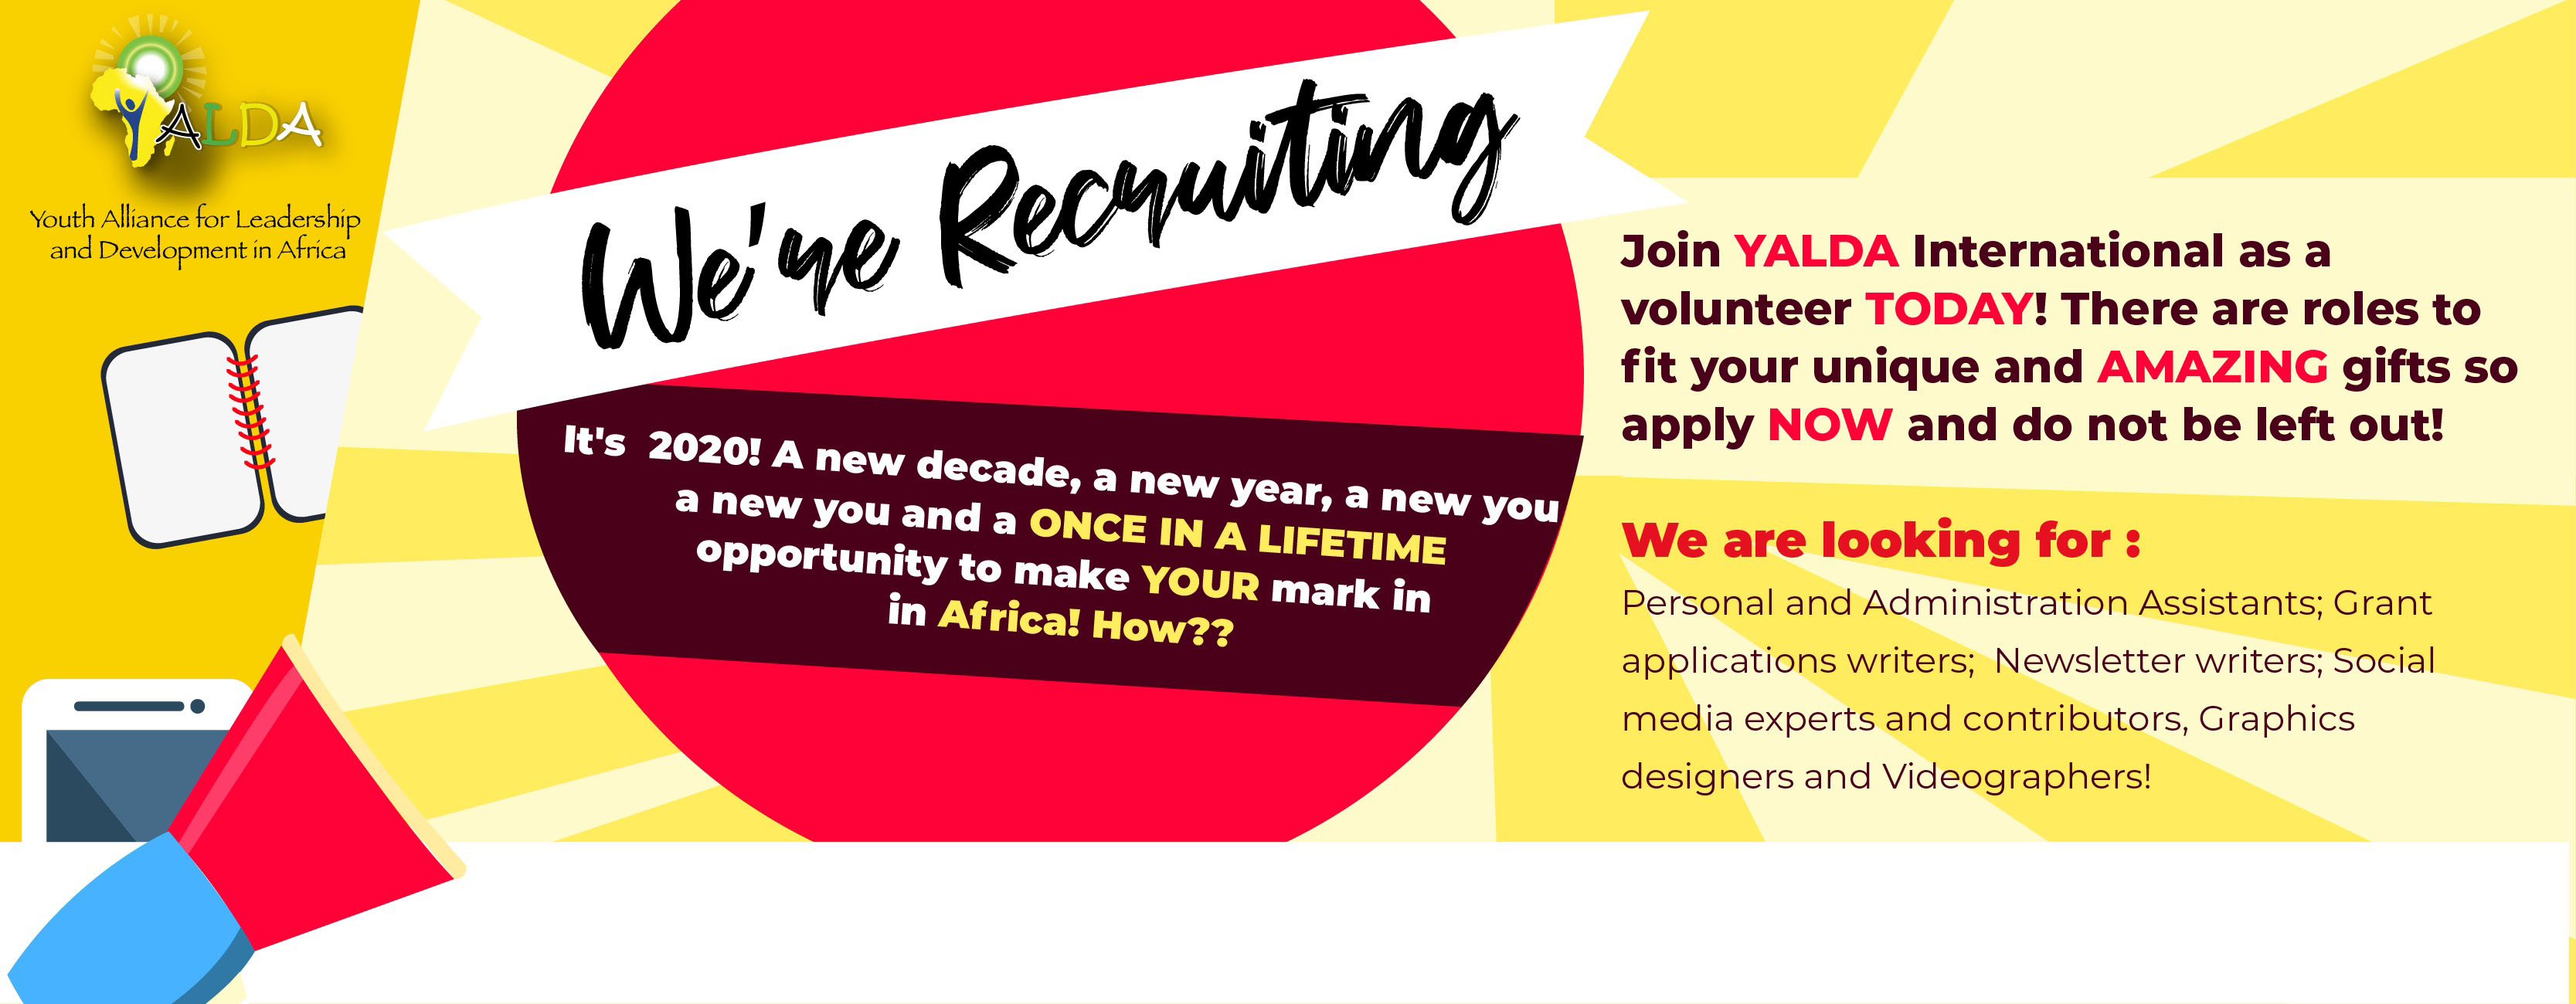 Recruitment US Flyer Second Version